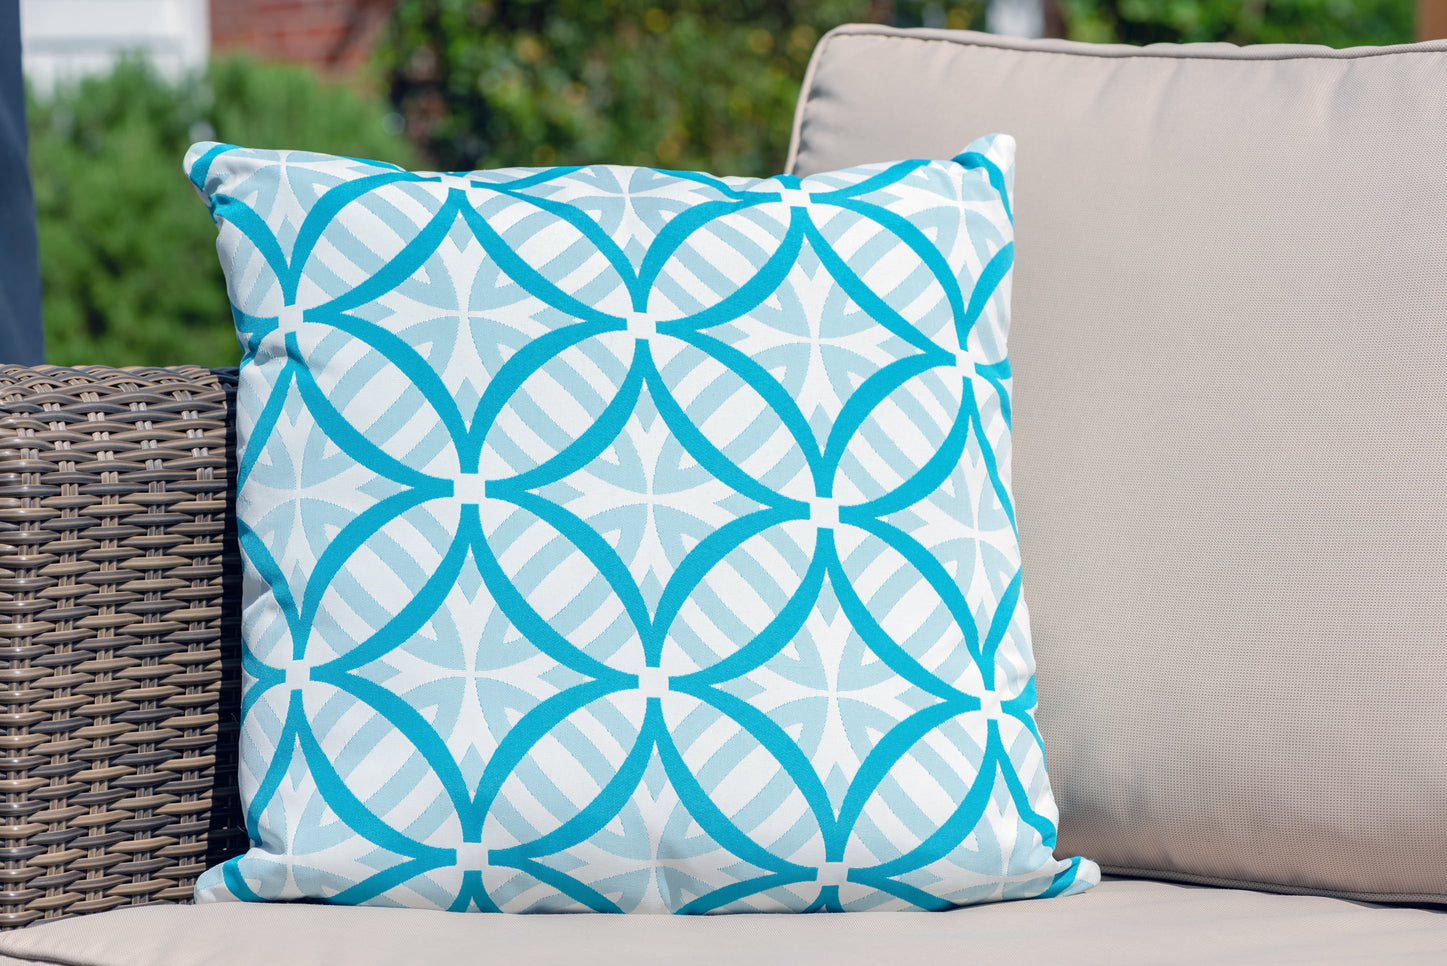 Luxury Cushion in Coolum Turquoise Bean Bag Cushion armadillosun